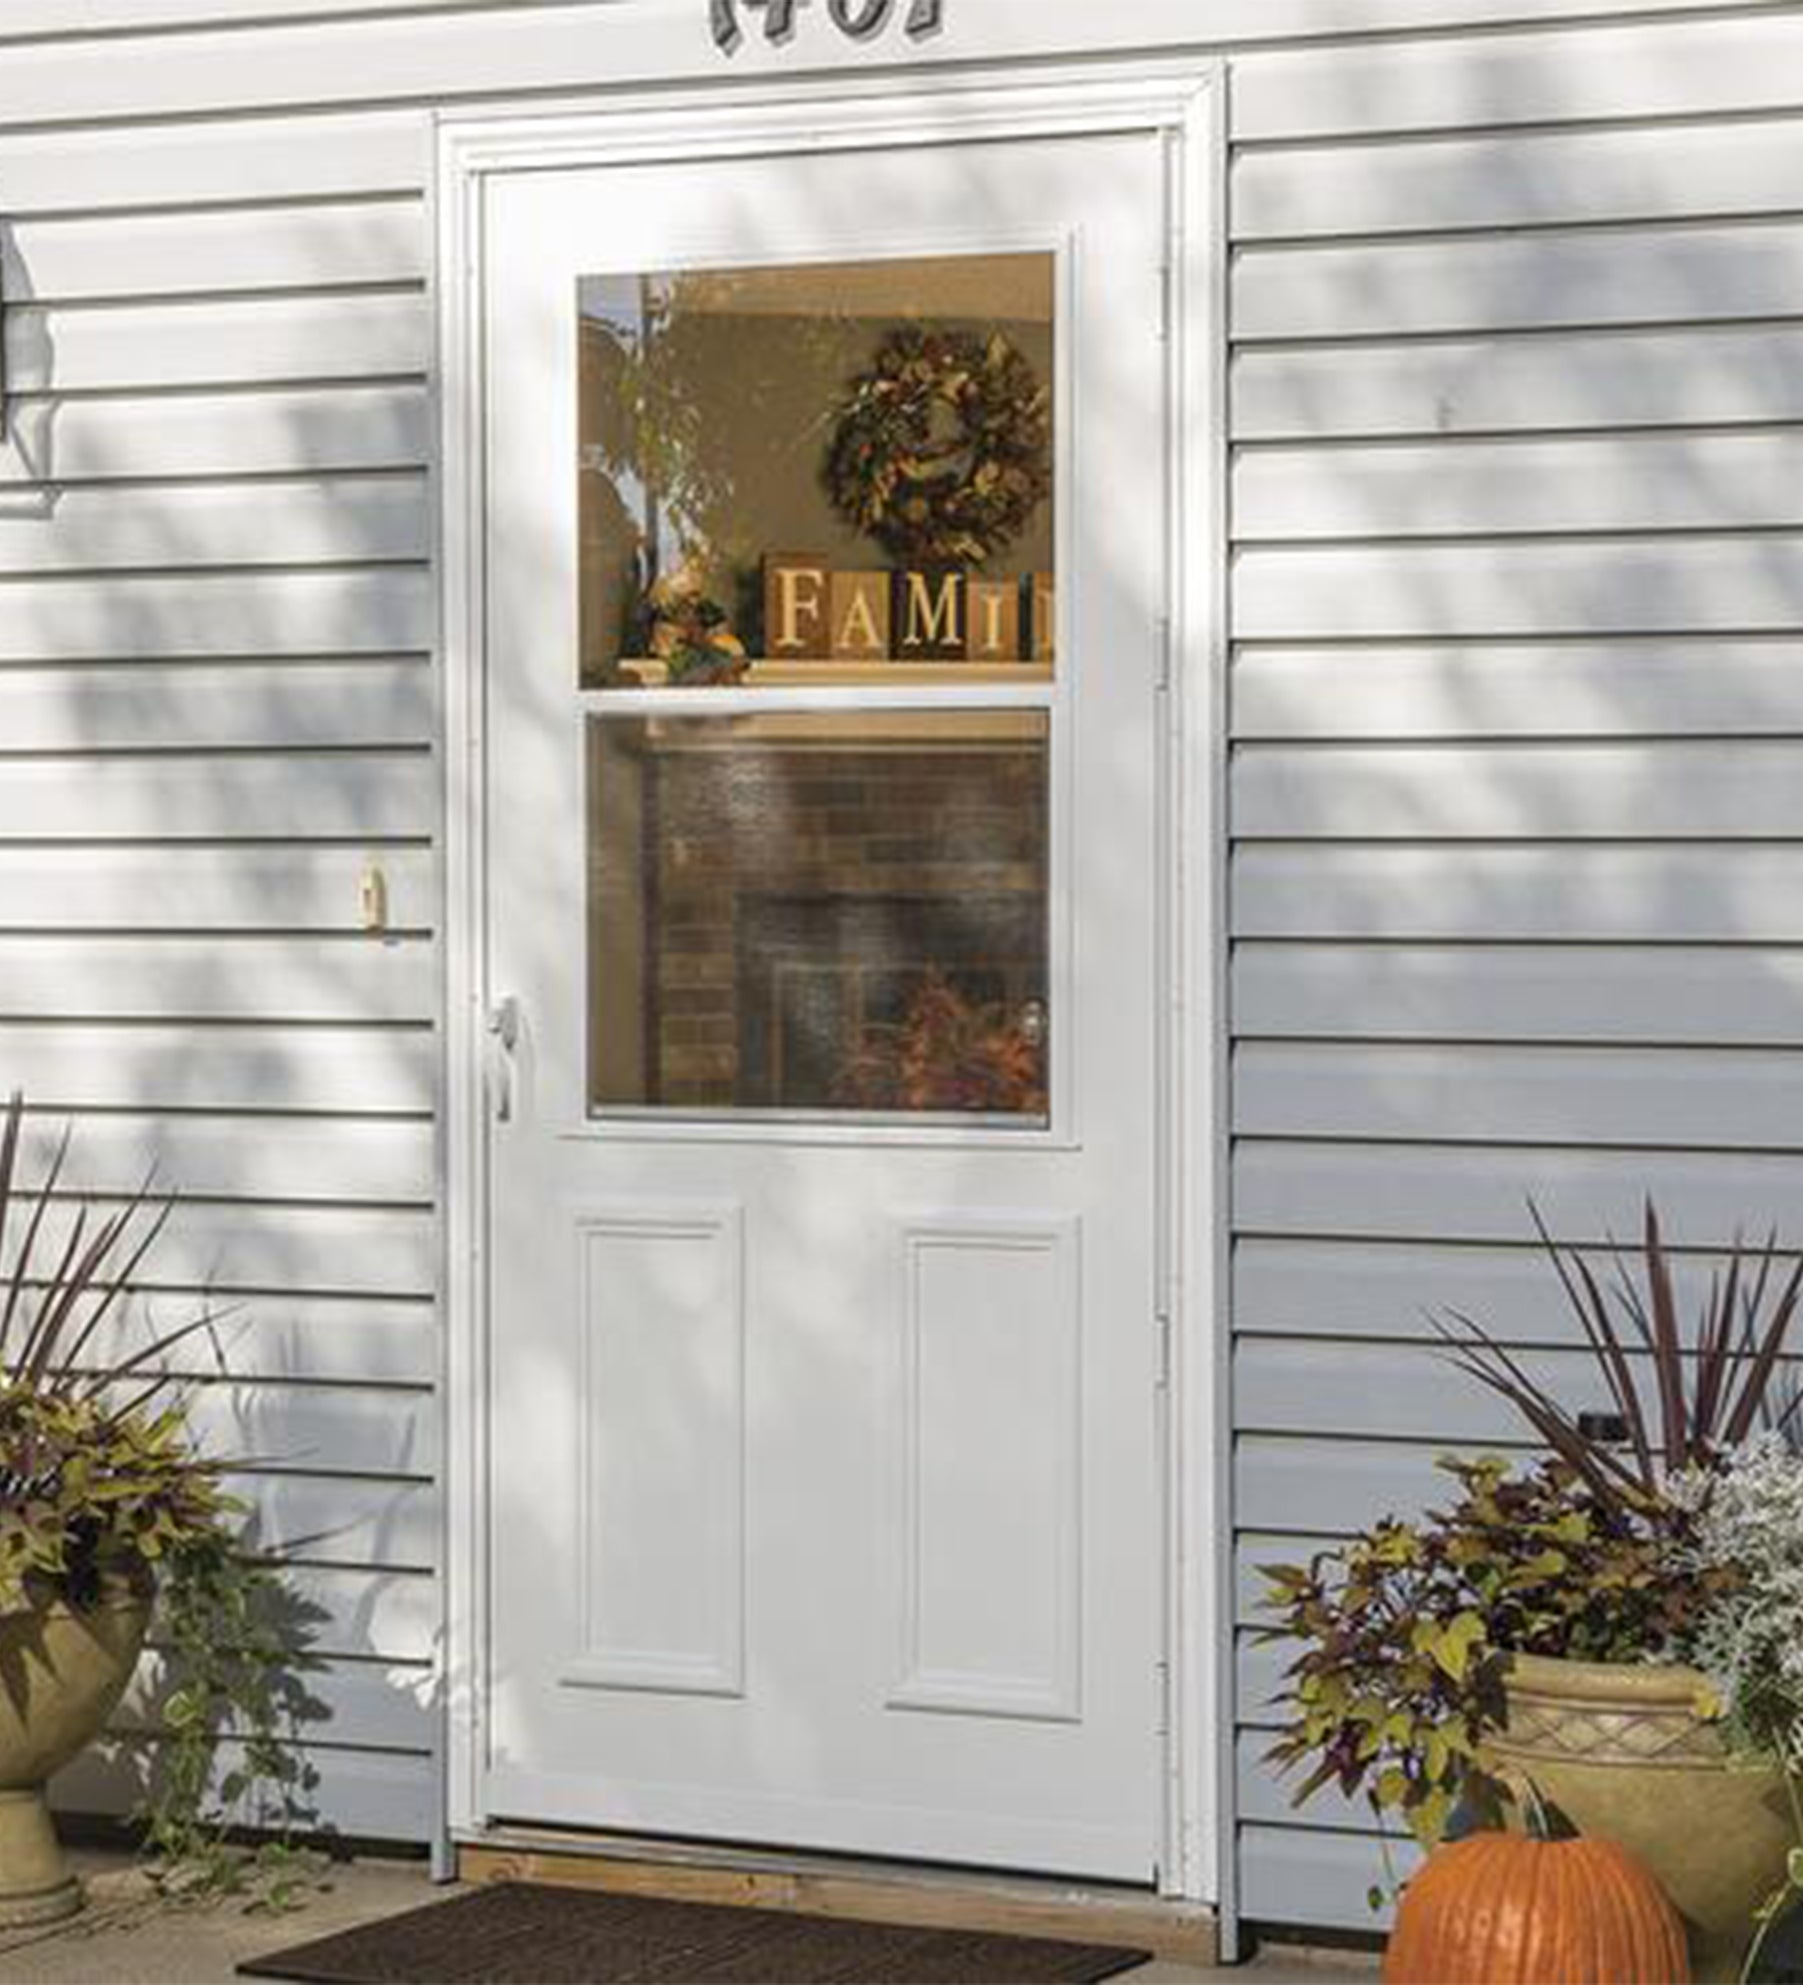 INSTALLED Larson Easy Vent High view Storm Door w/ Hardware STARTING $746.99